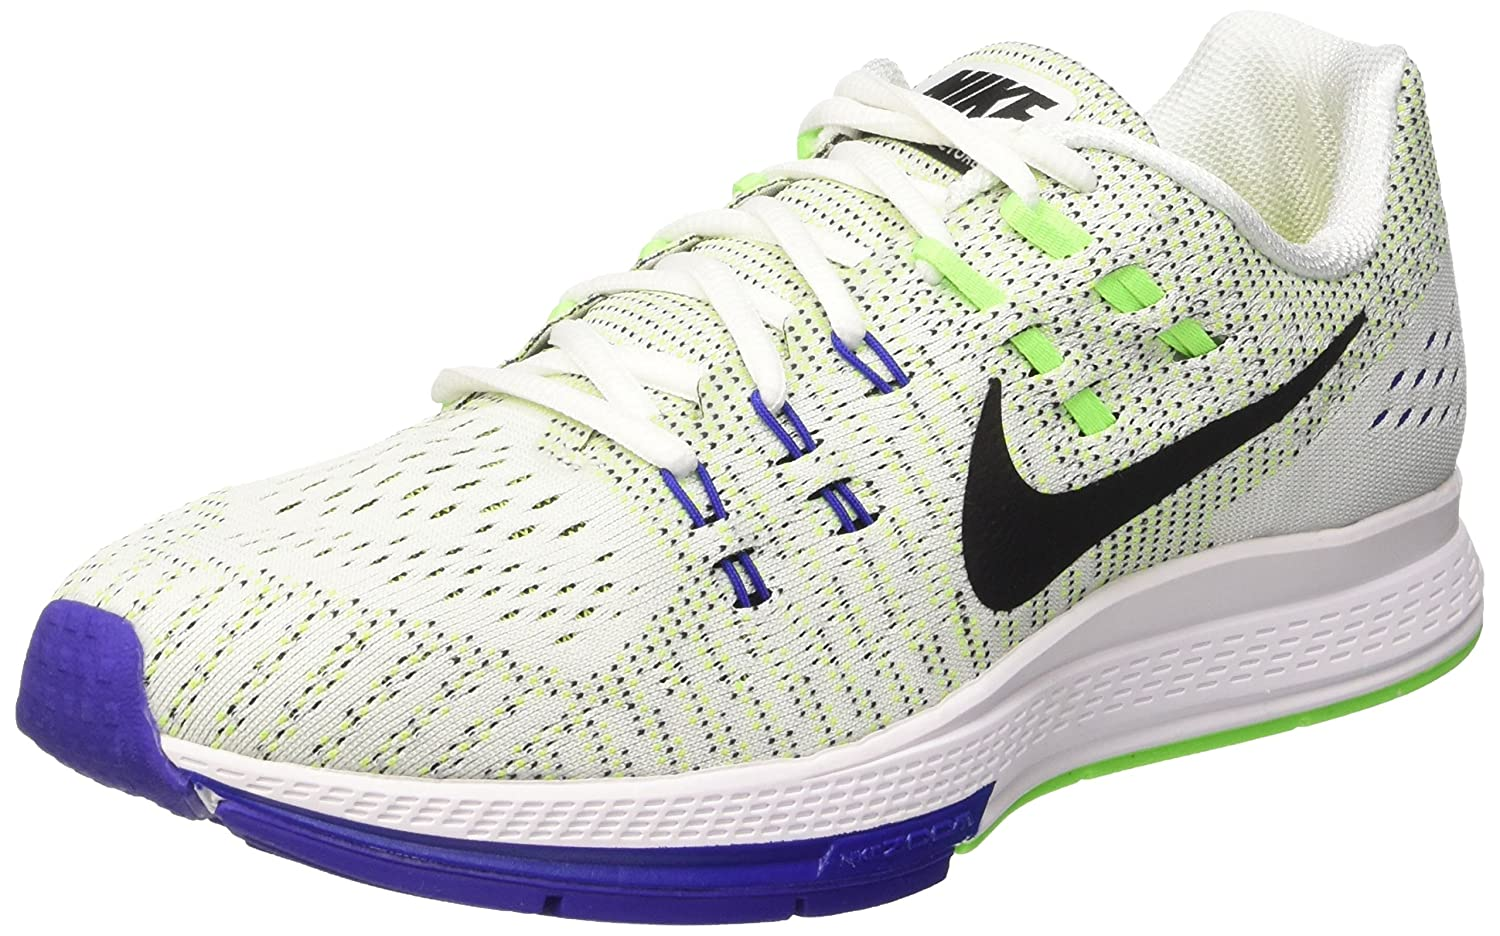 NIKE Mens Air Zoom Structure 19 Running Shoes B01CEJ2CJ6 8 D(M) US|White/Black/Electric Green